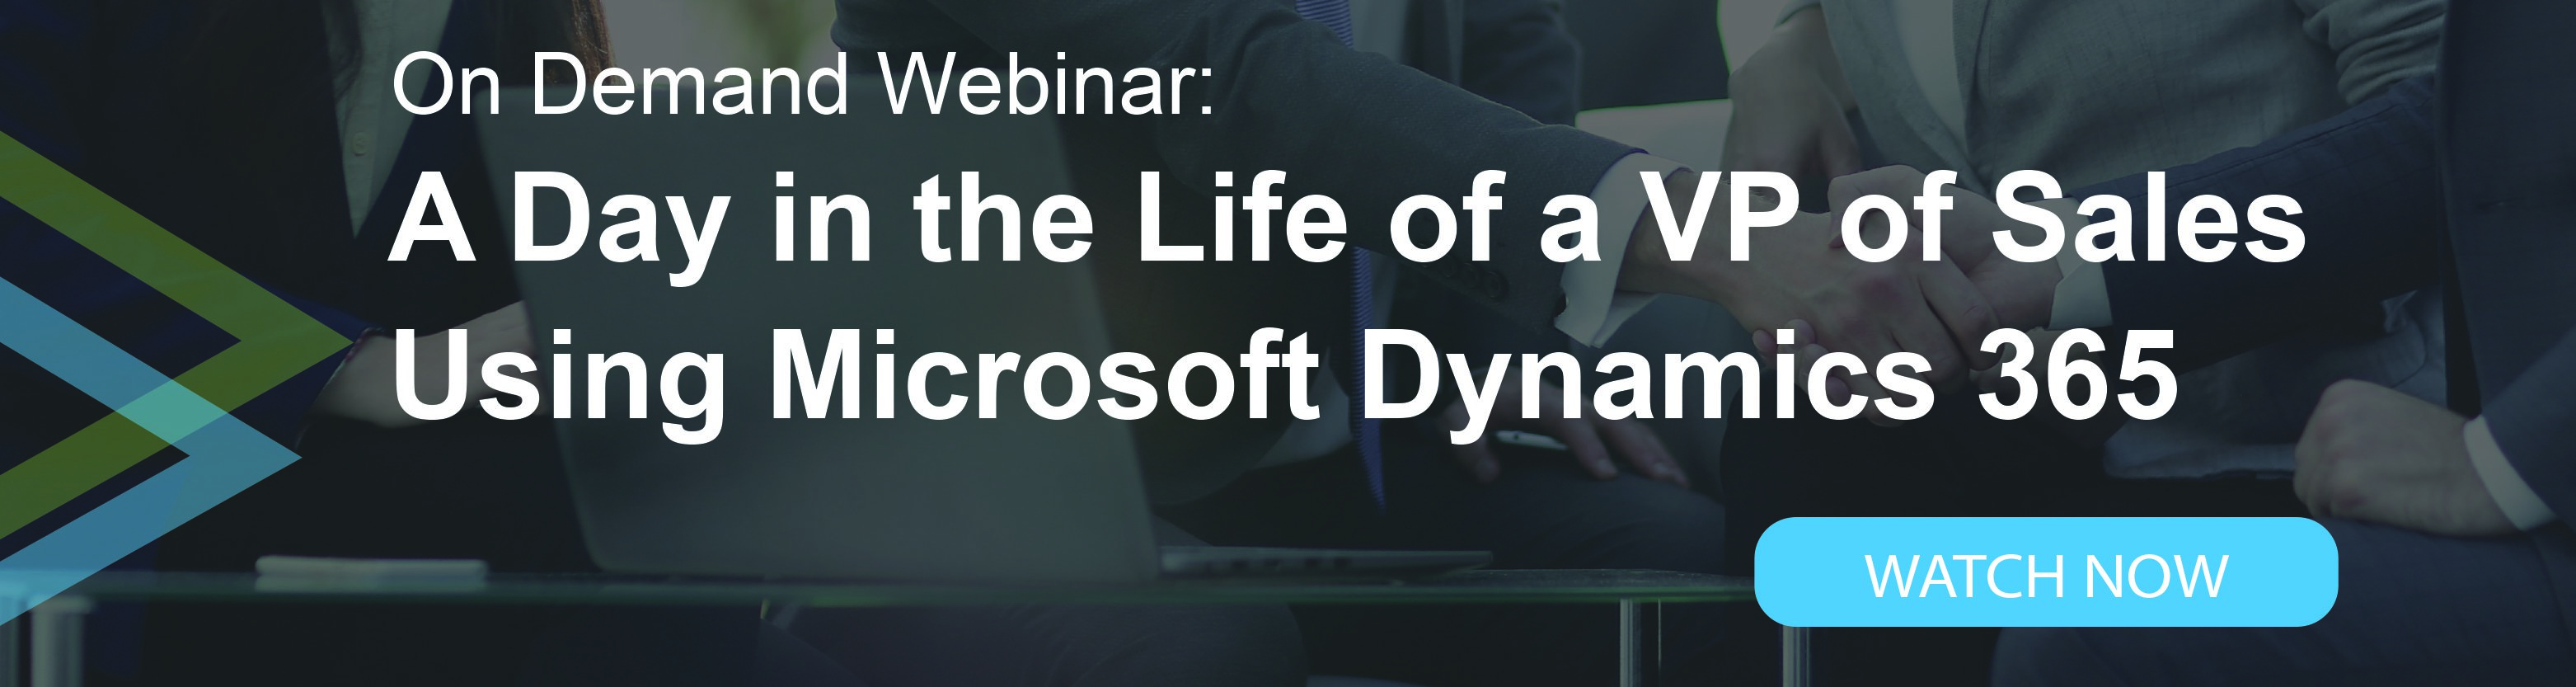 https://info.fullscope.com/resources/webinars/a-day-in-life-of-a-vp-of-sales-using-microsoft-dynamics-365-on-demand-webinar